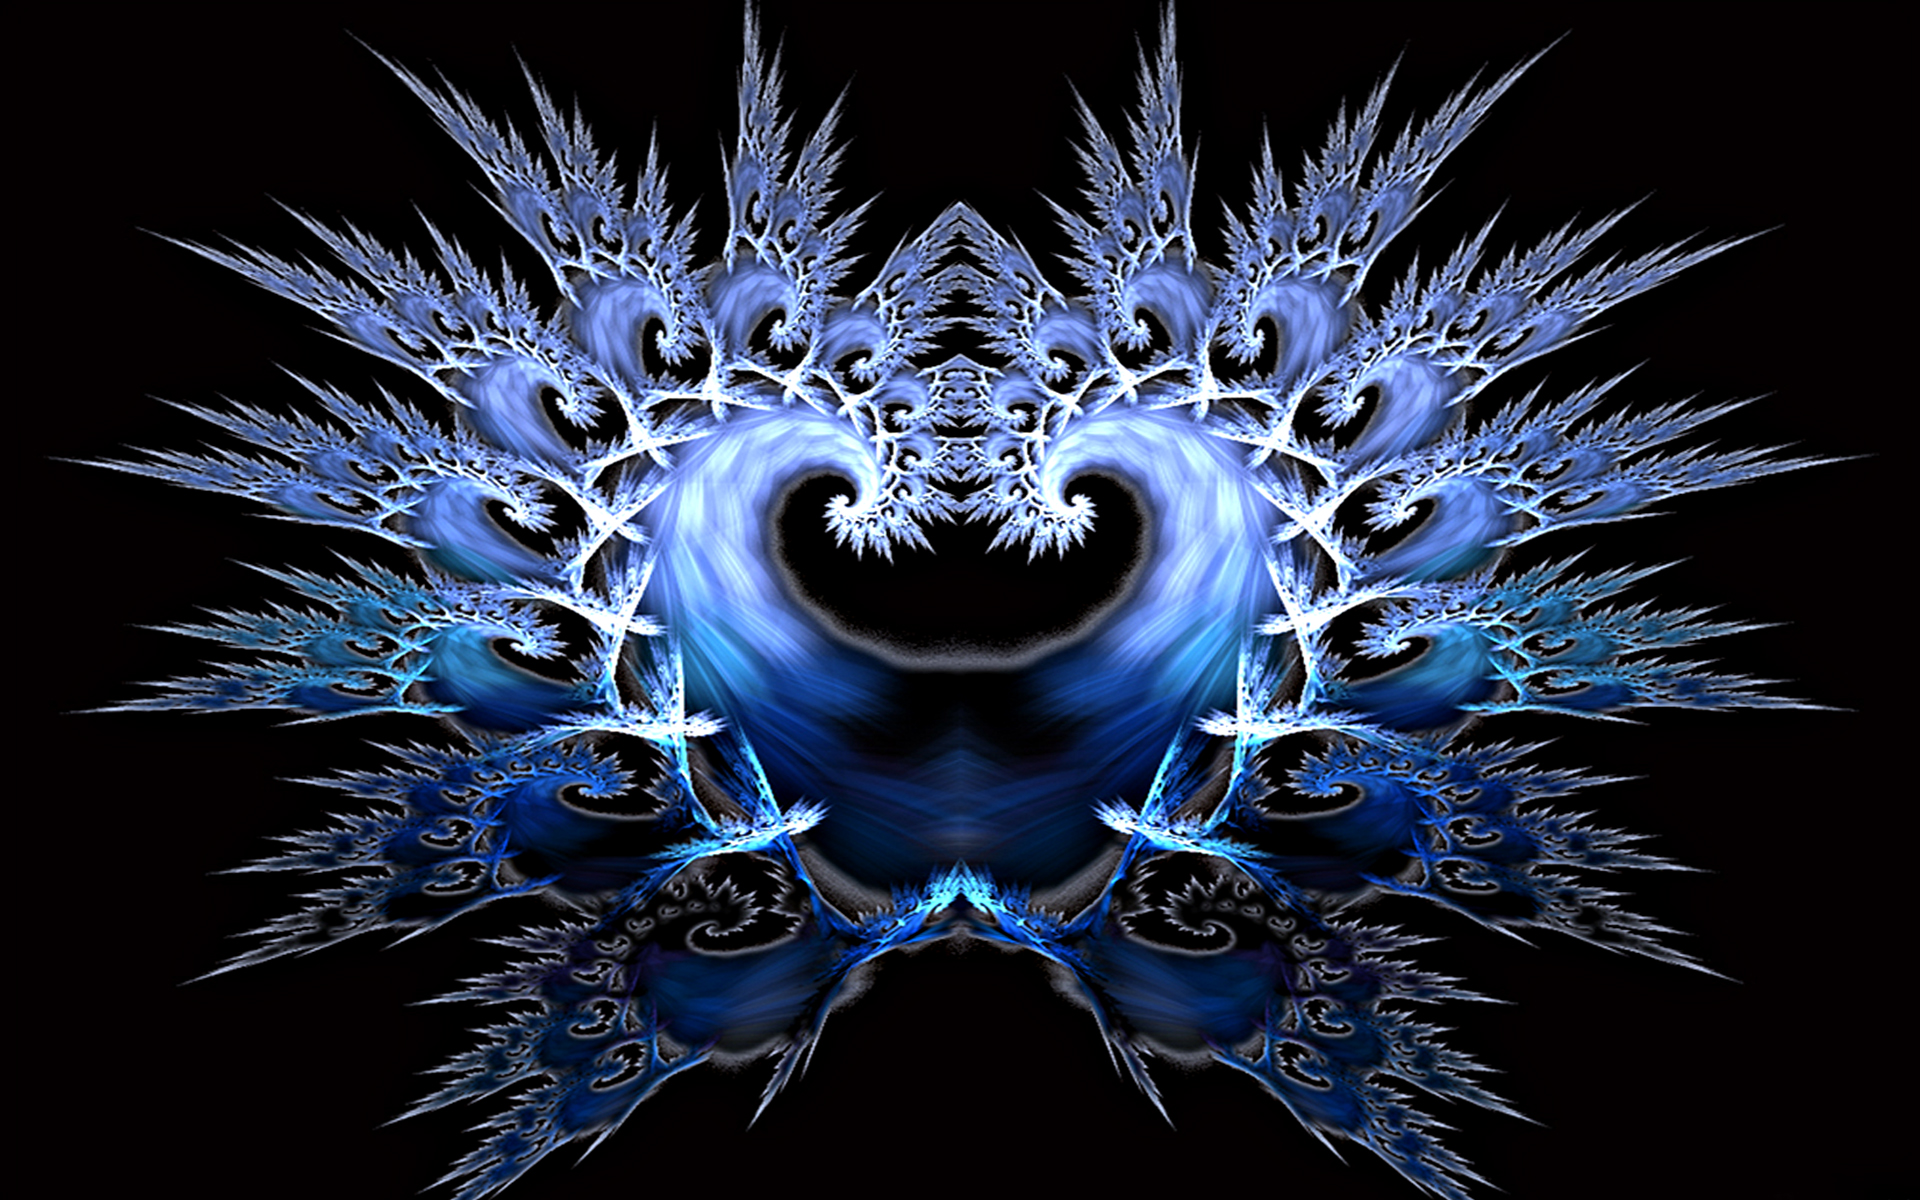 Frozen Heart Fractal wallpapers | Frozen Heart Fractal ...